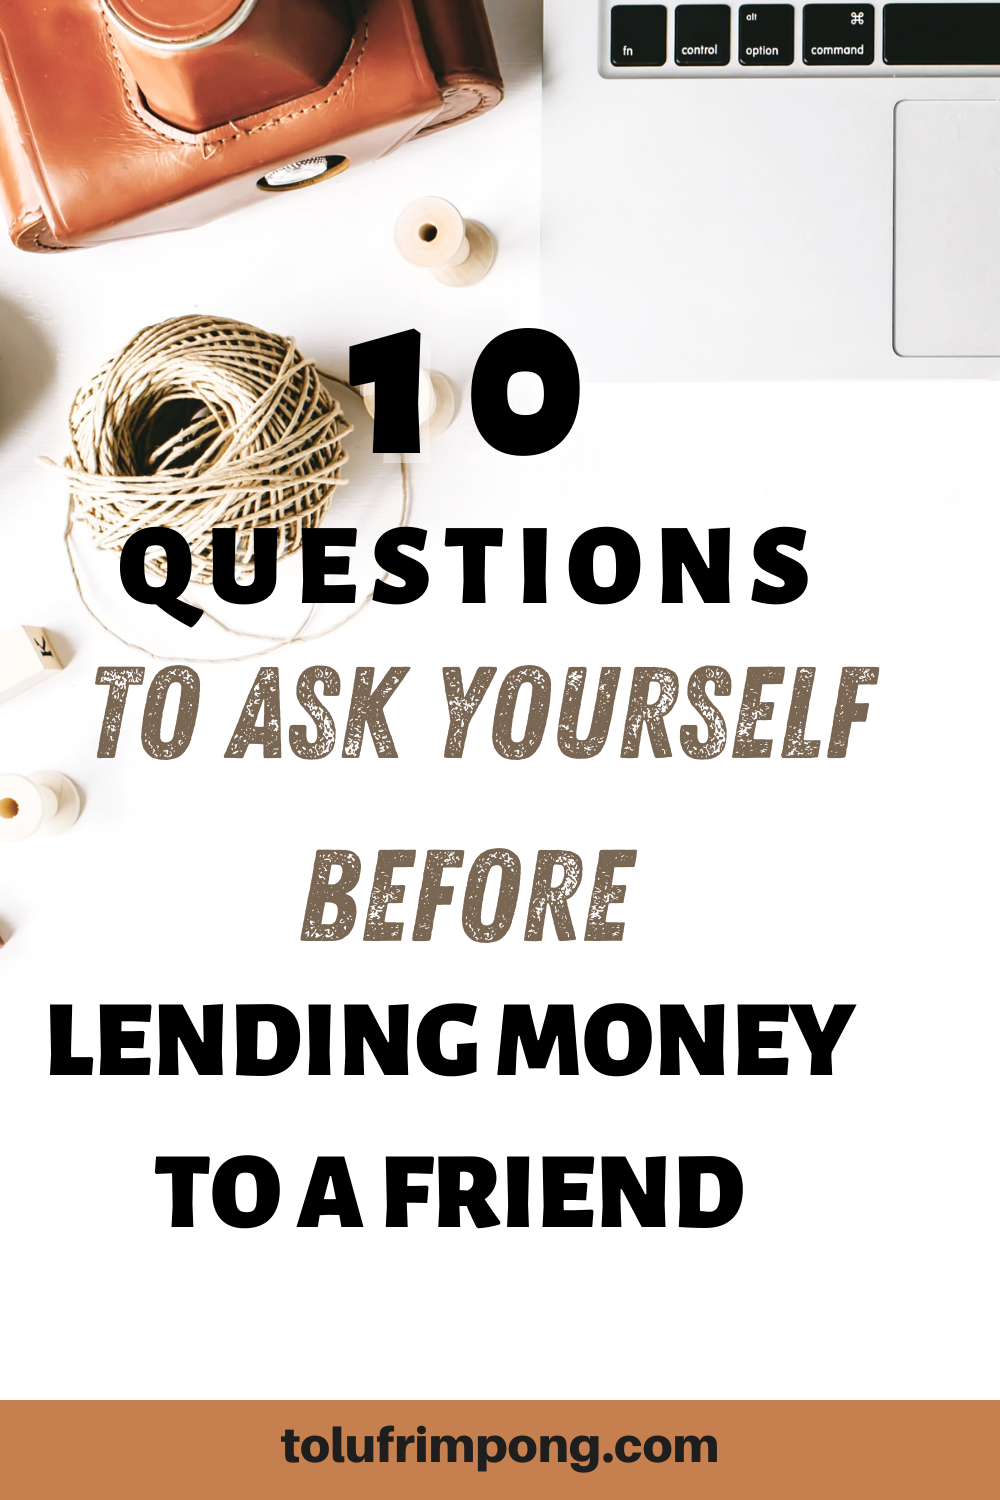 Questions To Ask Yourself Before Lending Money To A Friend